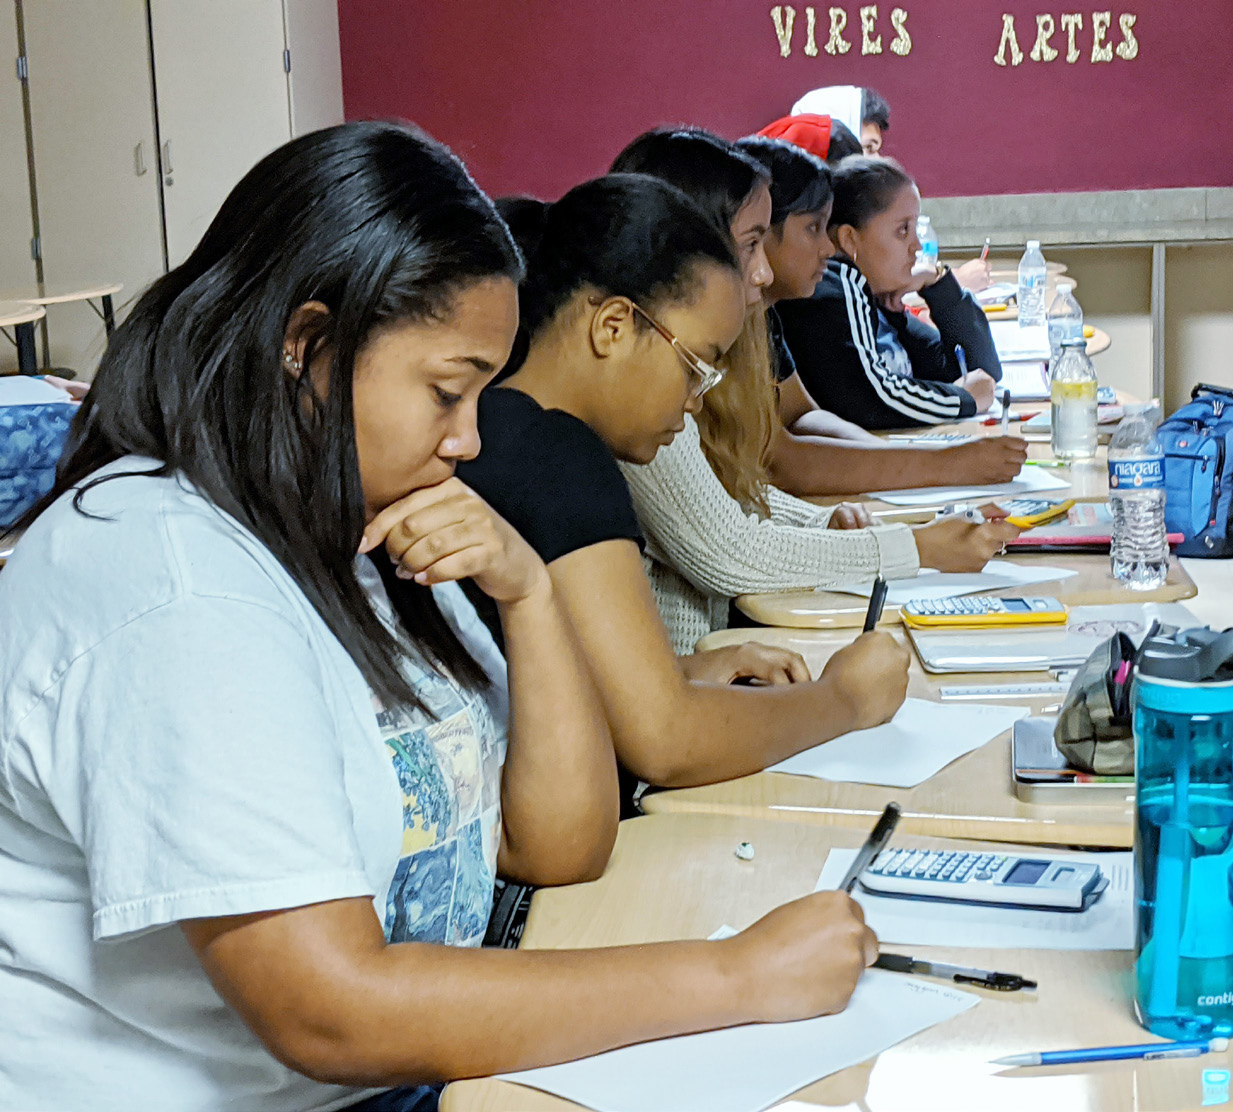 Palm Beach County high school students engage in accelerated mathematics coursework.